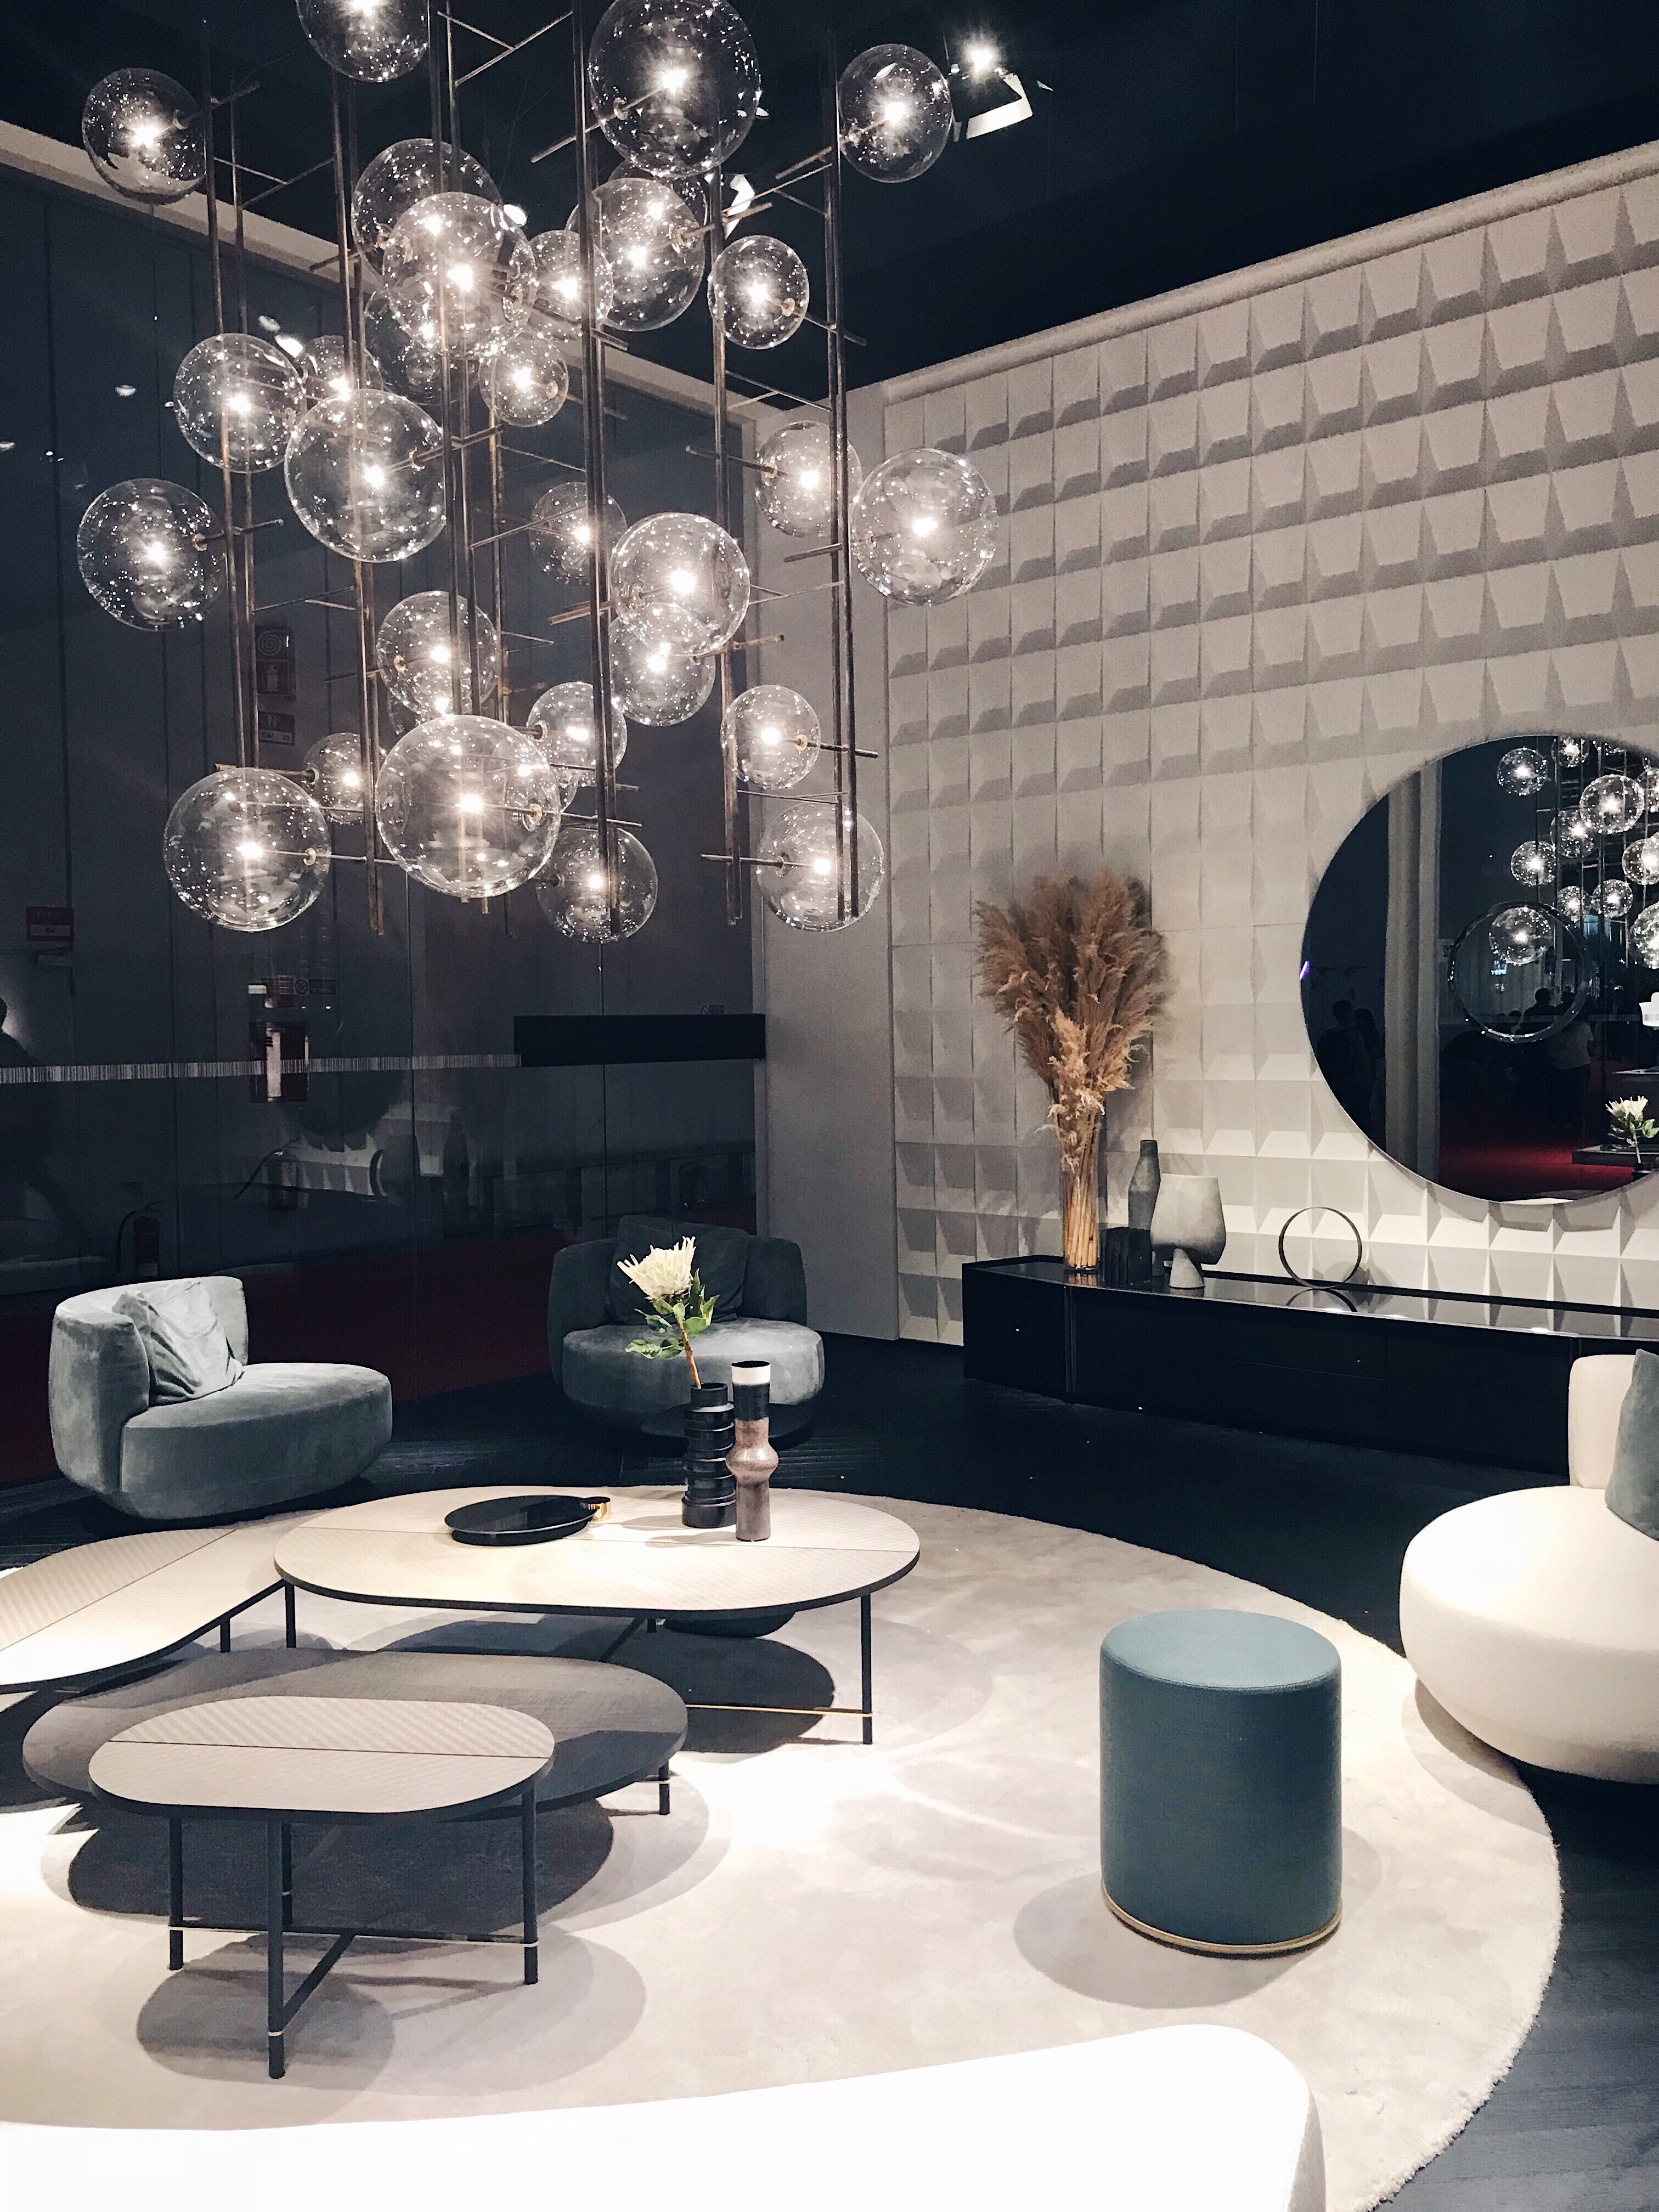 The Bolle suspension lamp by Massimo Castagna for Gallotti & Radice